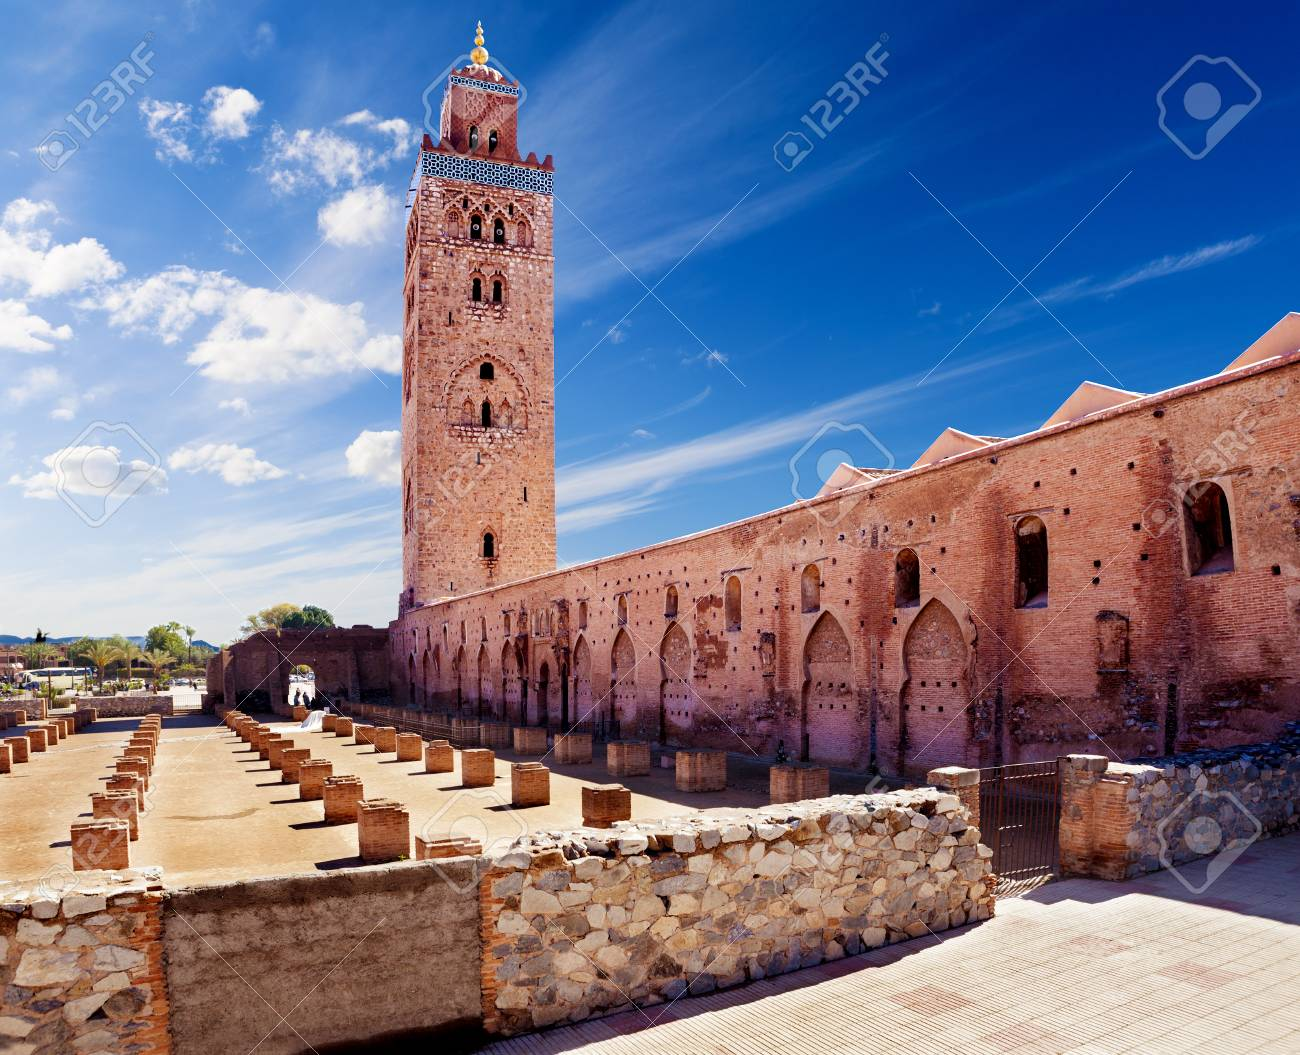 Travel Concept Around The World Koutoubia Mosque Marrakech Stock Photo Picture And Royalty Free Image Image 90651129